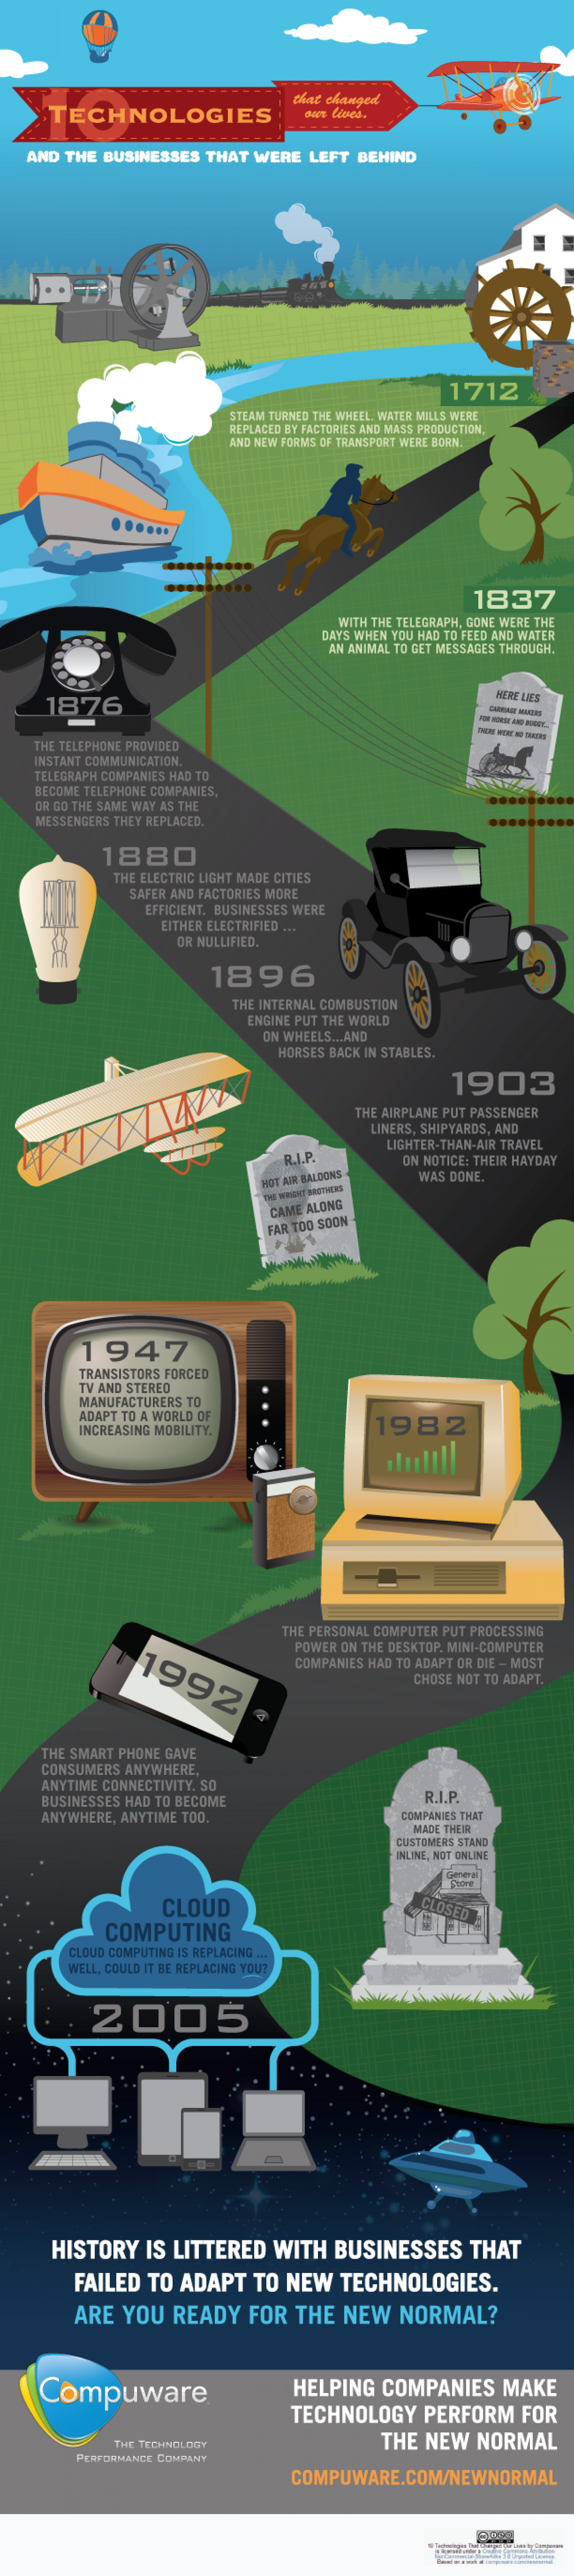 Technologies That Changed Our Lives Infographic